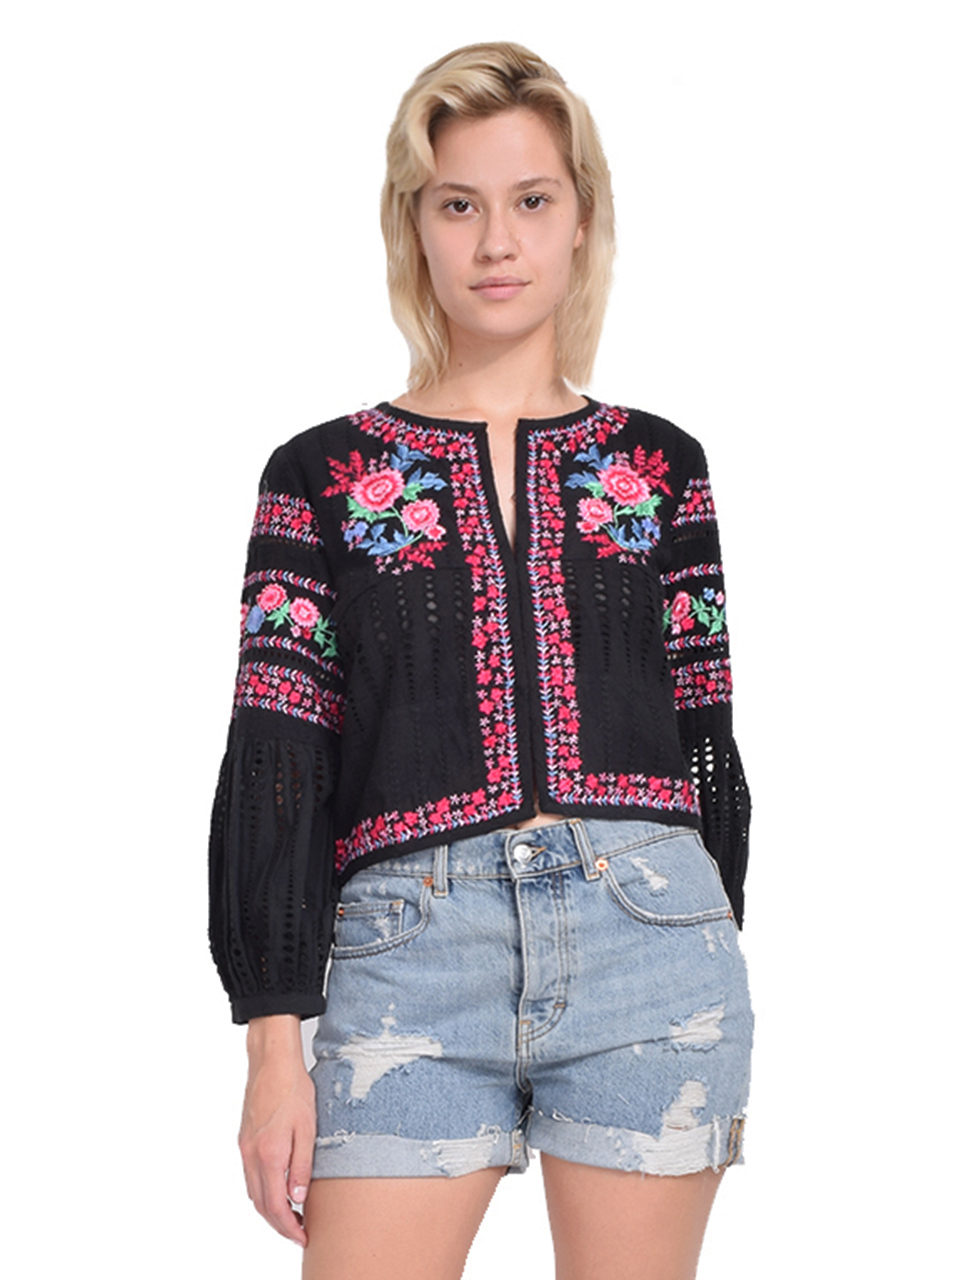 Misa Charlotta Jacket in Black Front View  X1https://cdn11.bigcommerce.com/s-3wu6n/products/33195/images/109586/63__35692.1590631516.244.365.jpg?c=2X2